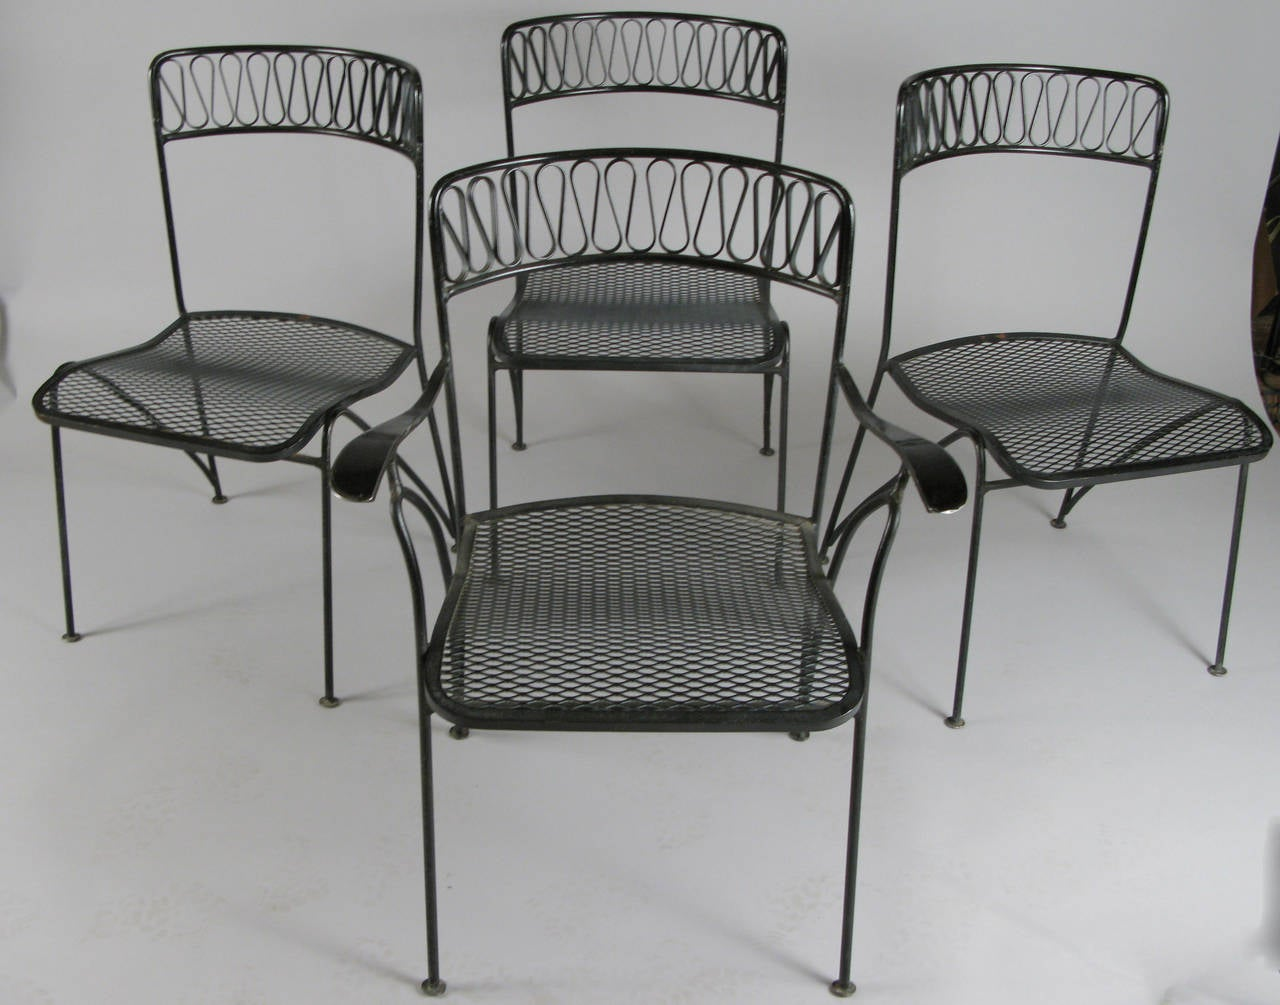 1950s Wrought Iron Dining Set By Tempestini For Salterini At 1stdibs